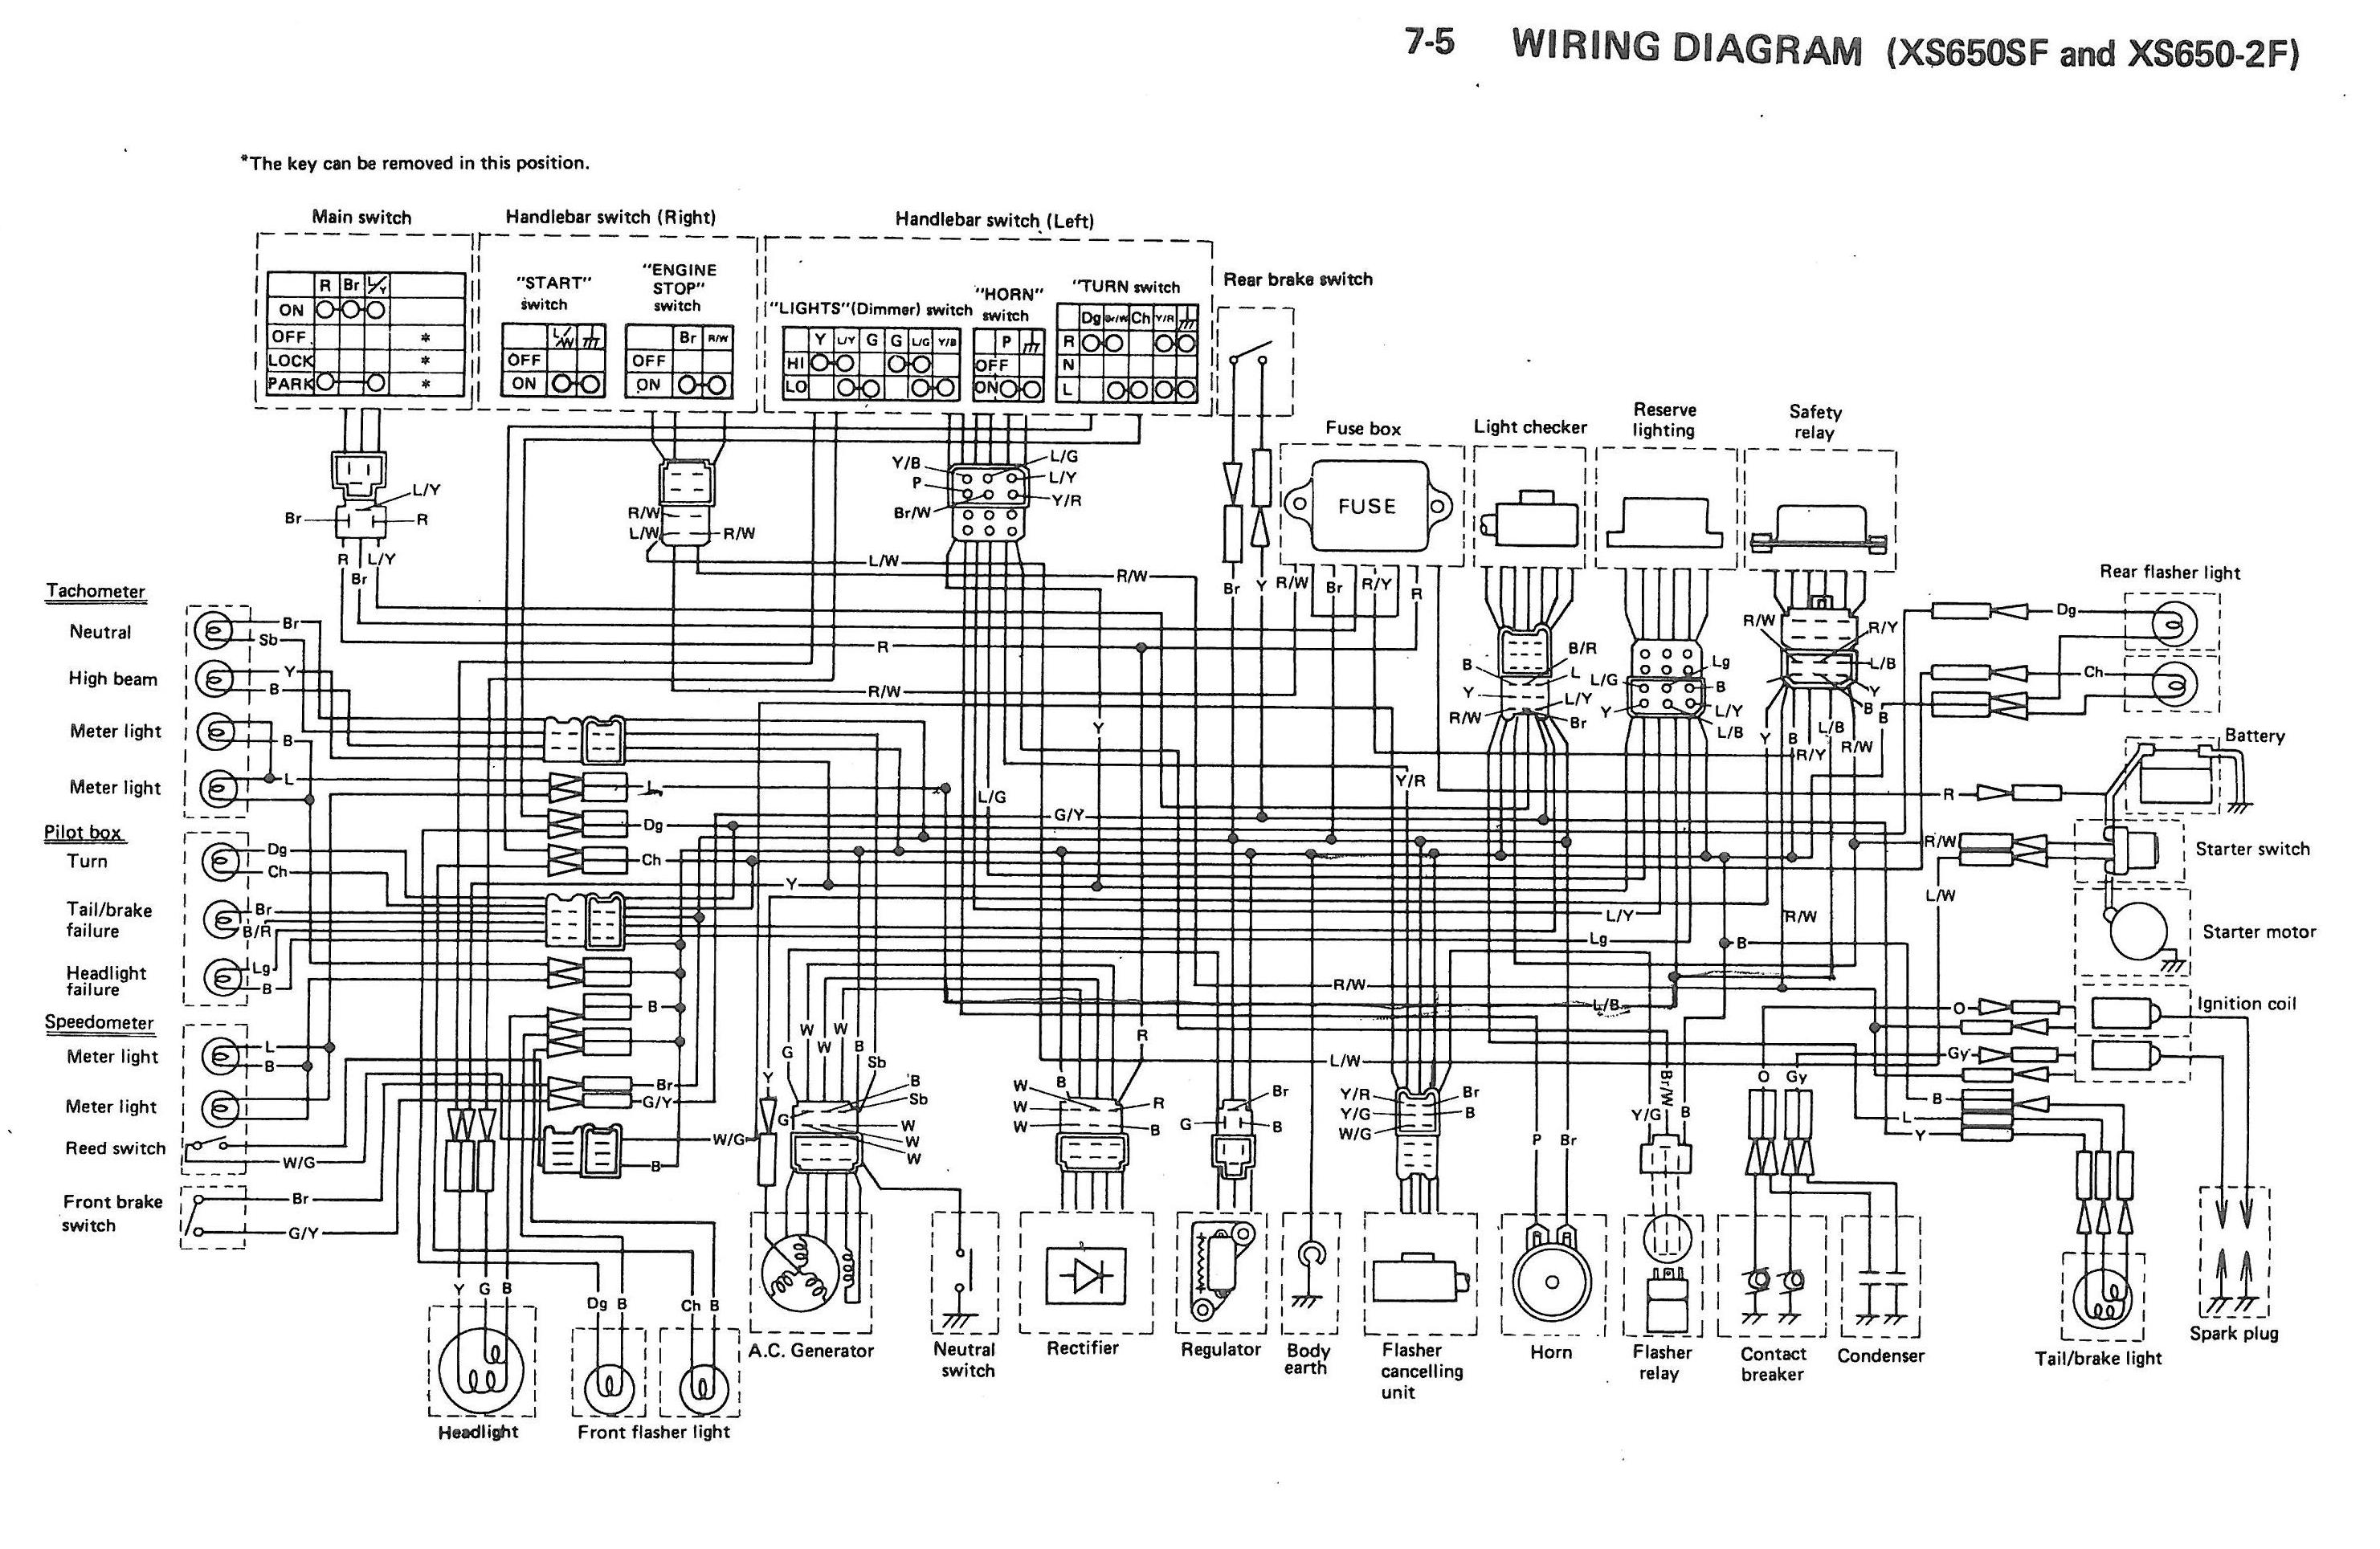 Yamaha Xs650 Wiring Diagram Free Picture Schematic   Wiring ... on